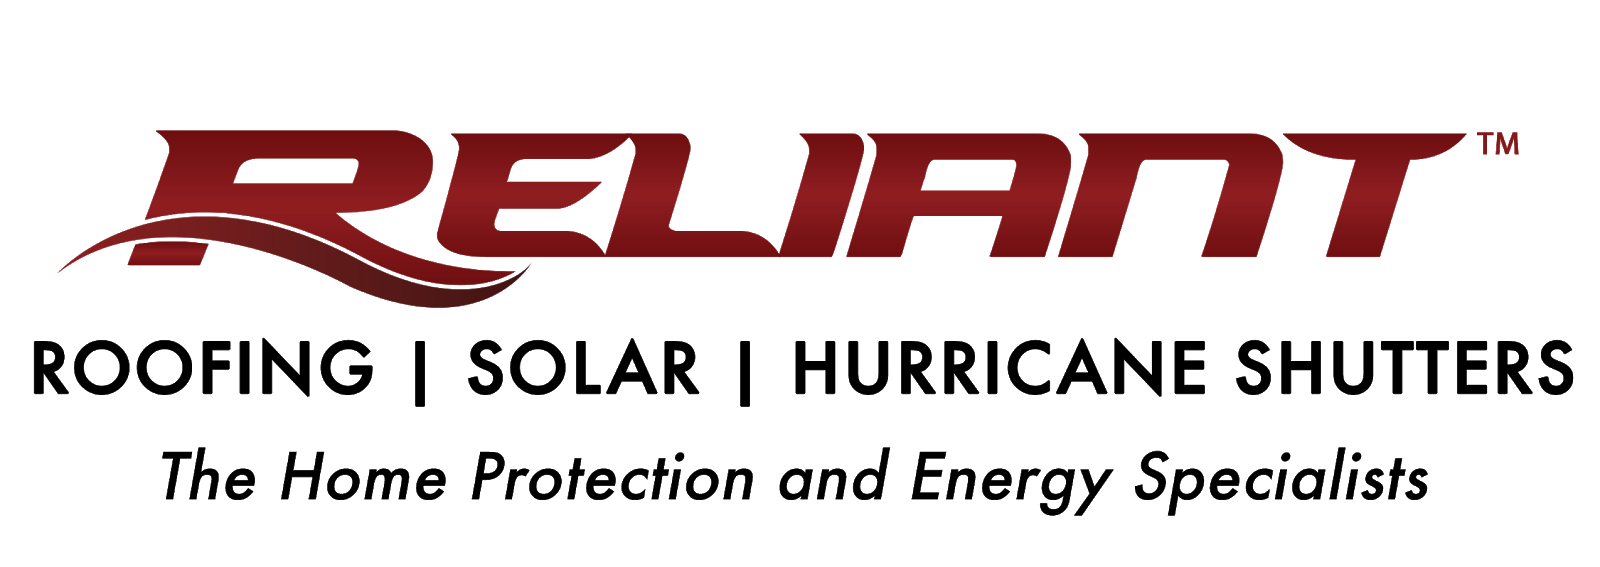 Reliant Roofing Is Now Reliant - New Logo, New Services, and Rebranding!